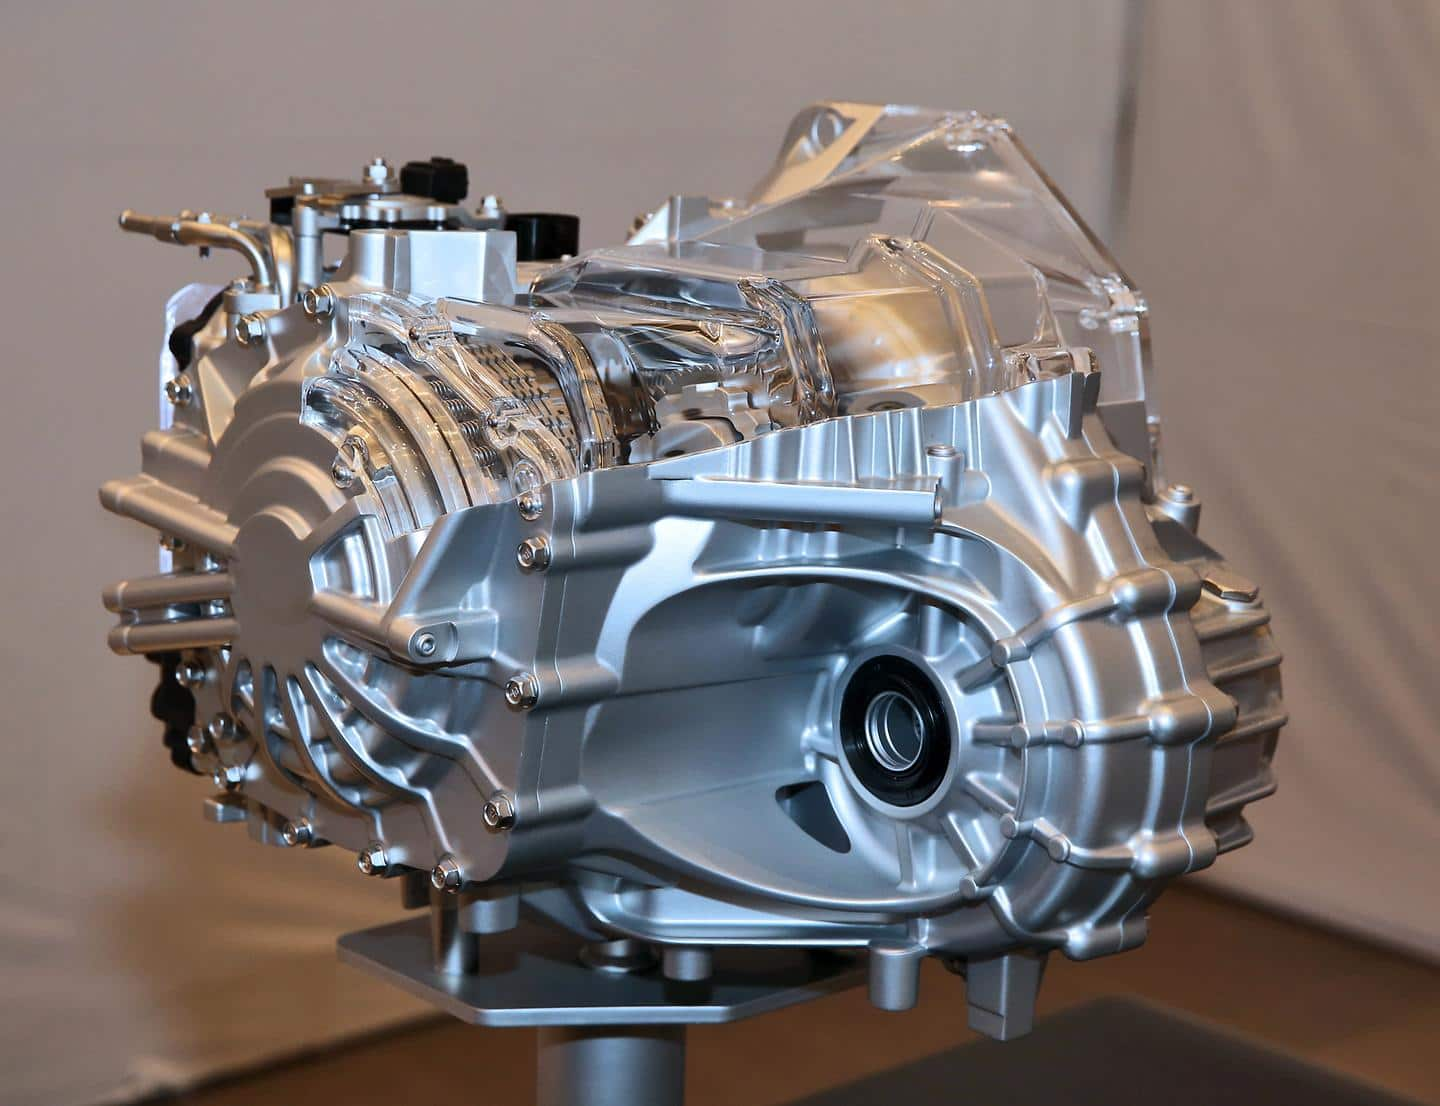 Hyundai motor unveils new hybrid dedicated gdi engine and for New motor and transmission